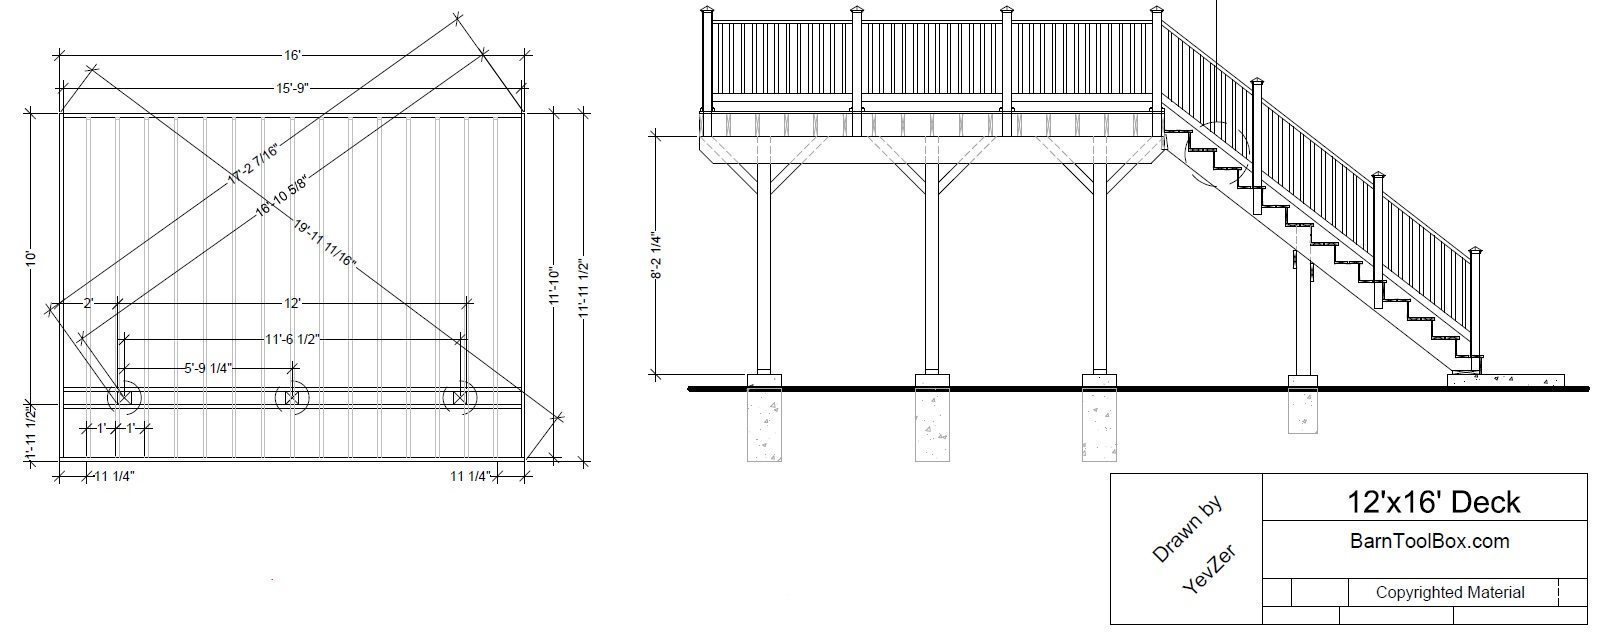 Building Decks - Free 12'x16'  Deck Plan and Maintenance Free Deck Photos